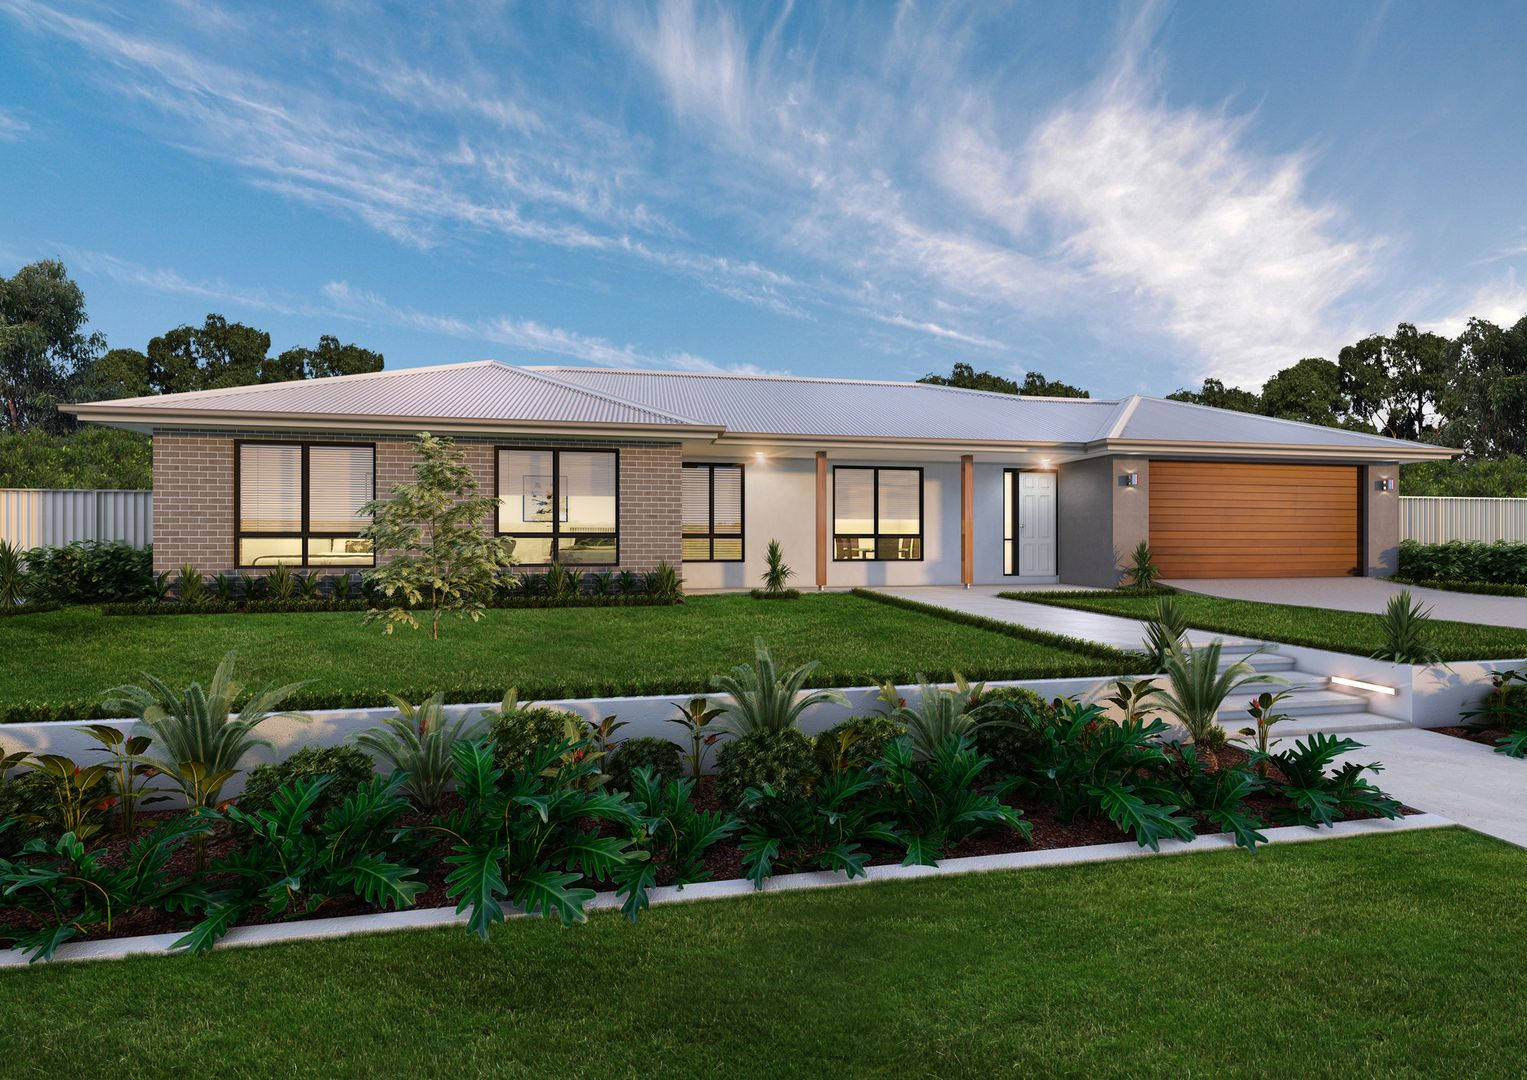 Lot 809 Yeomans Road, The Foothills, Armidale NSW 2350, Image 0